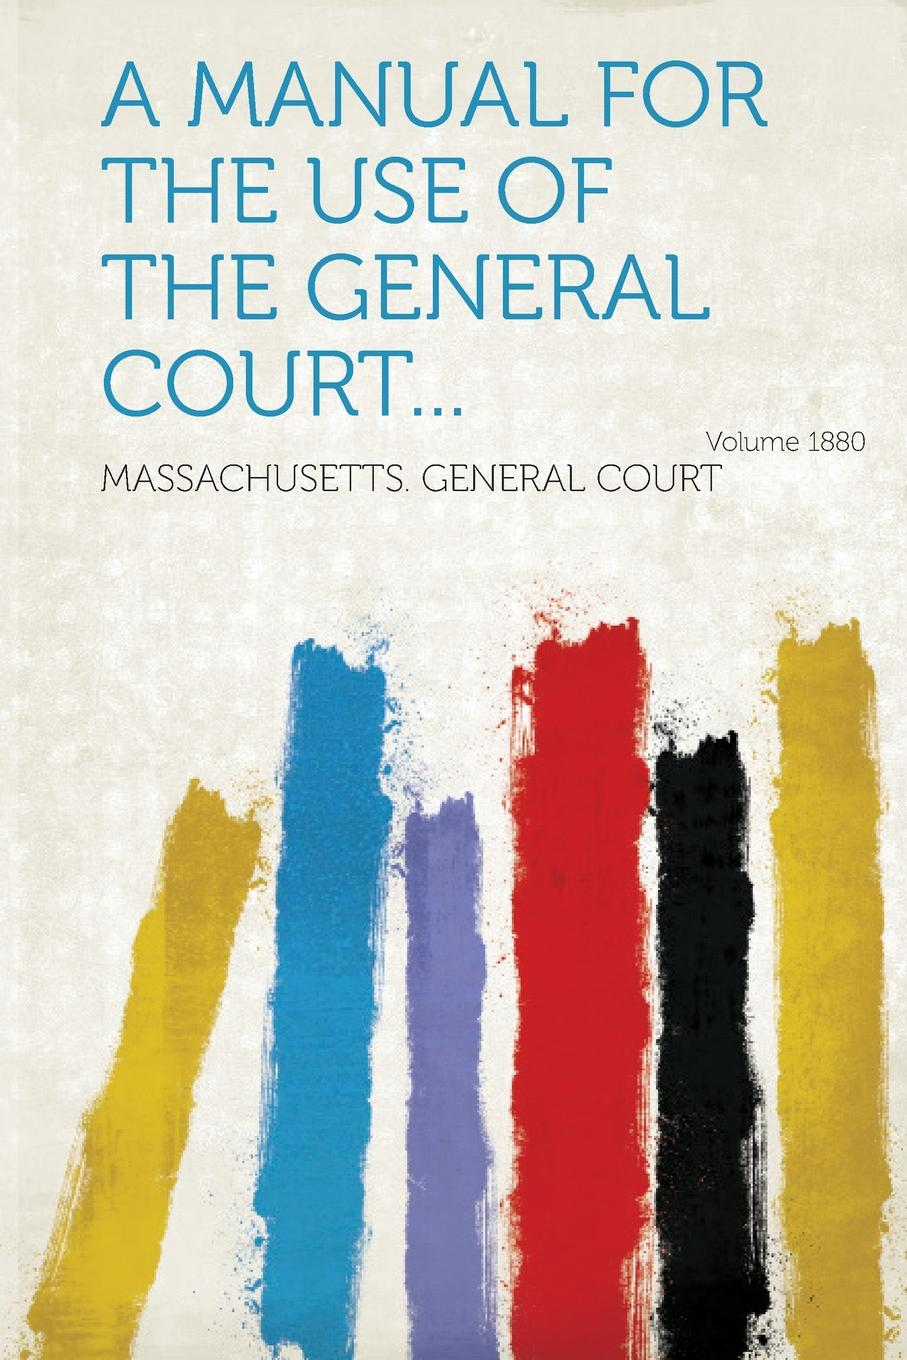 A Manual for the Use of the General Court... Year 1880